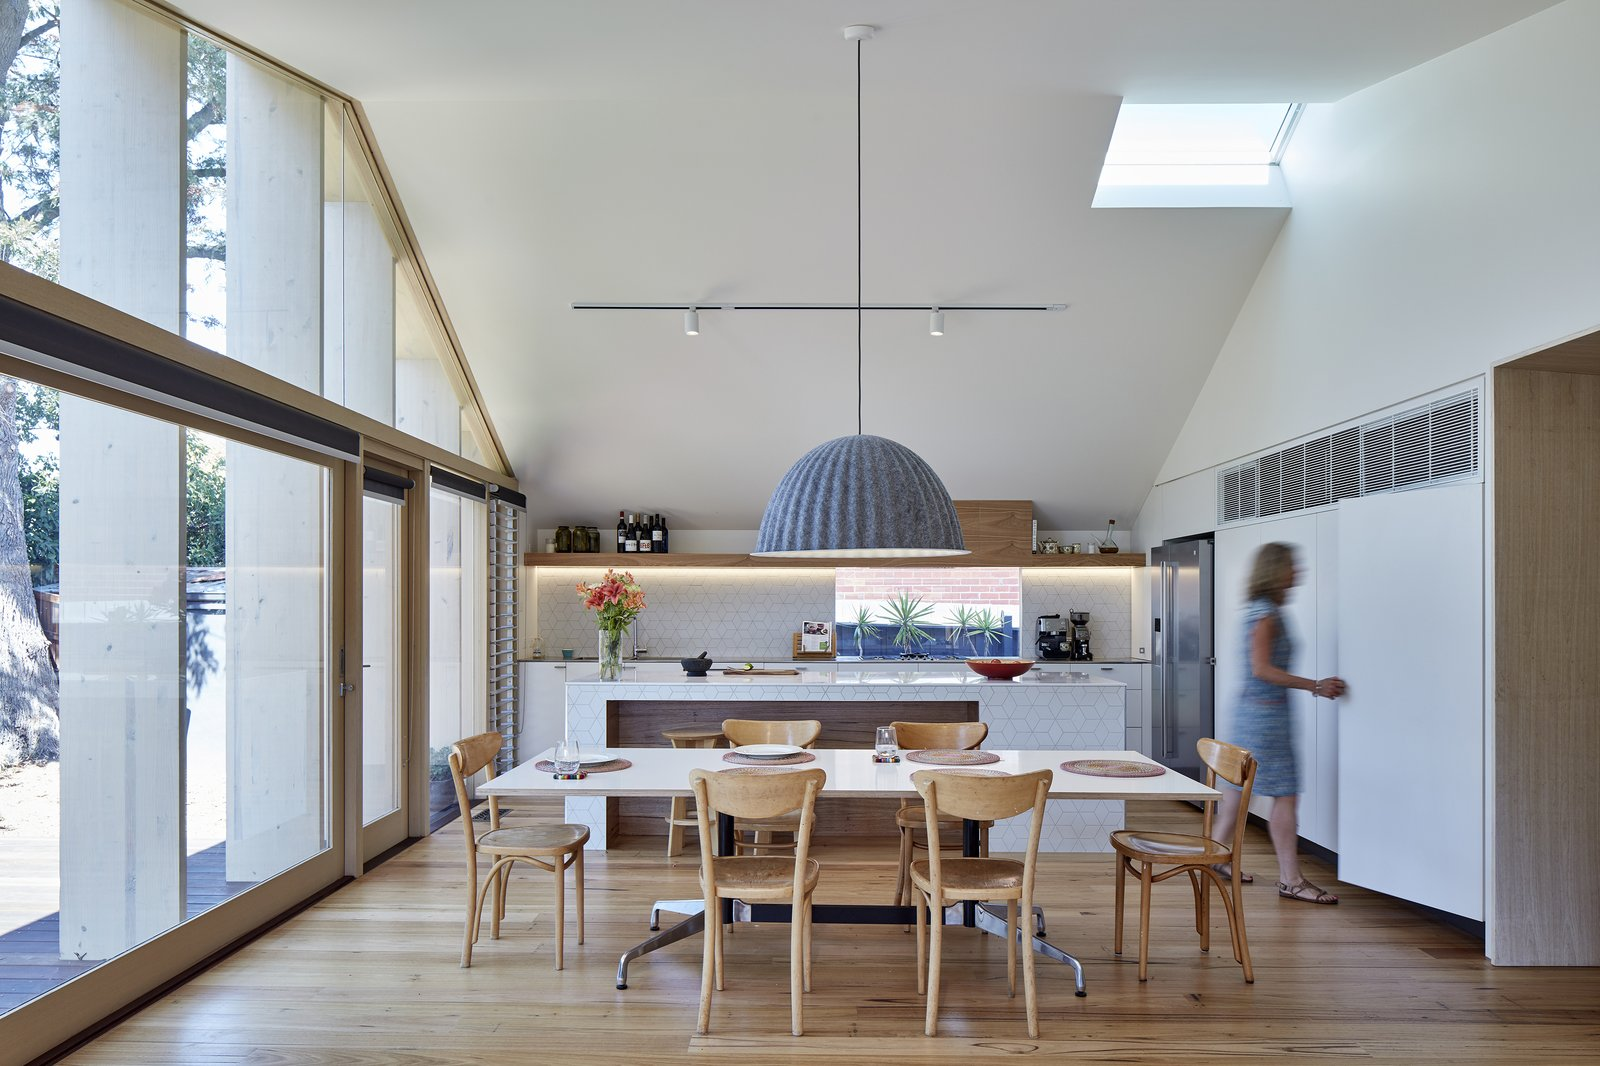 Dining Room, Medium Hardwood Floor, Table, Chair, Pendant Lighting, and Track Lighting Don't worry if you aren't quite sure where to start. With this eight-step guide, your space will be sparkling in no time.   Photos from A Contemporary Extension Gives This Australian Home a New Face